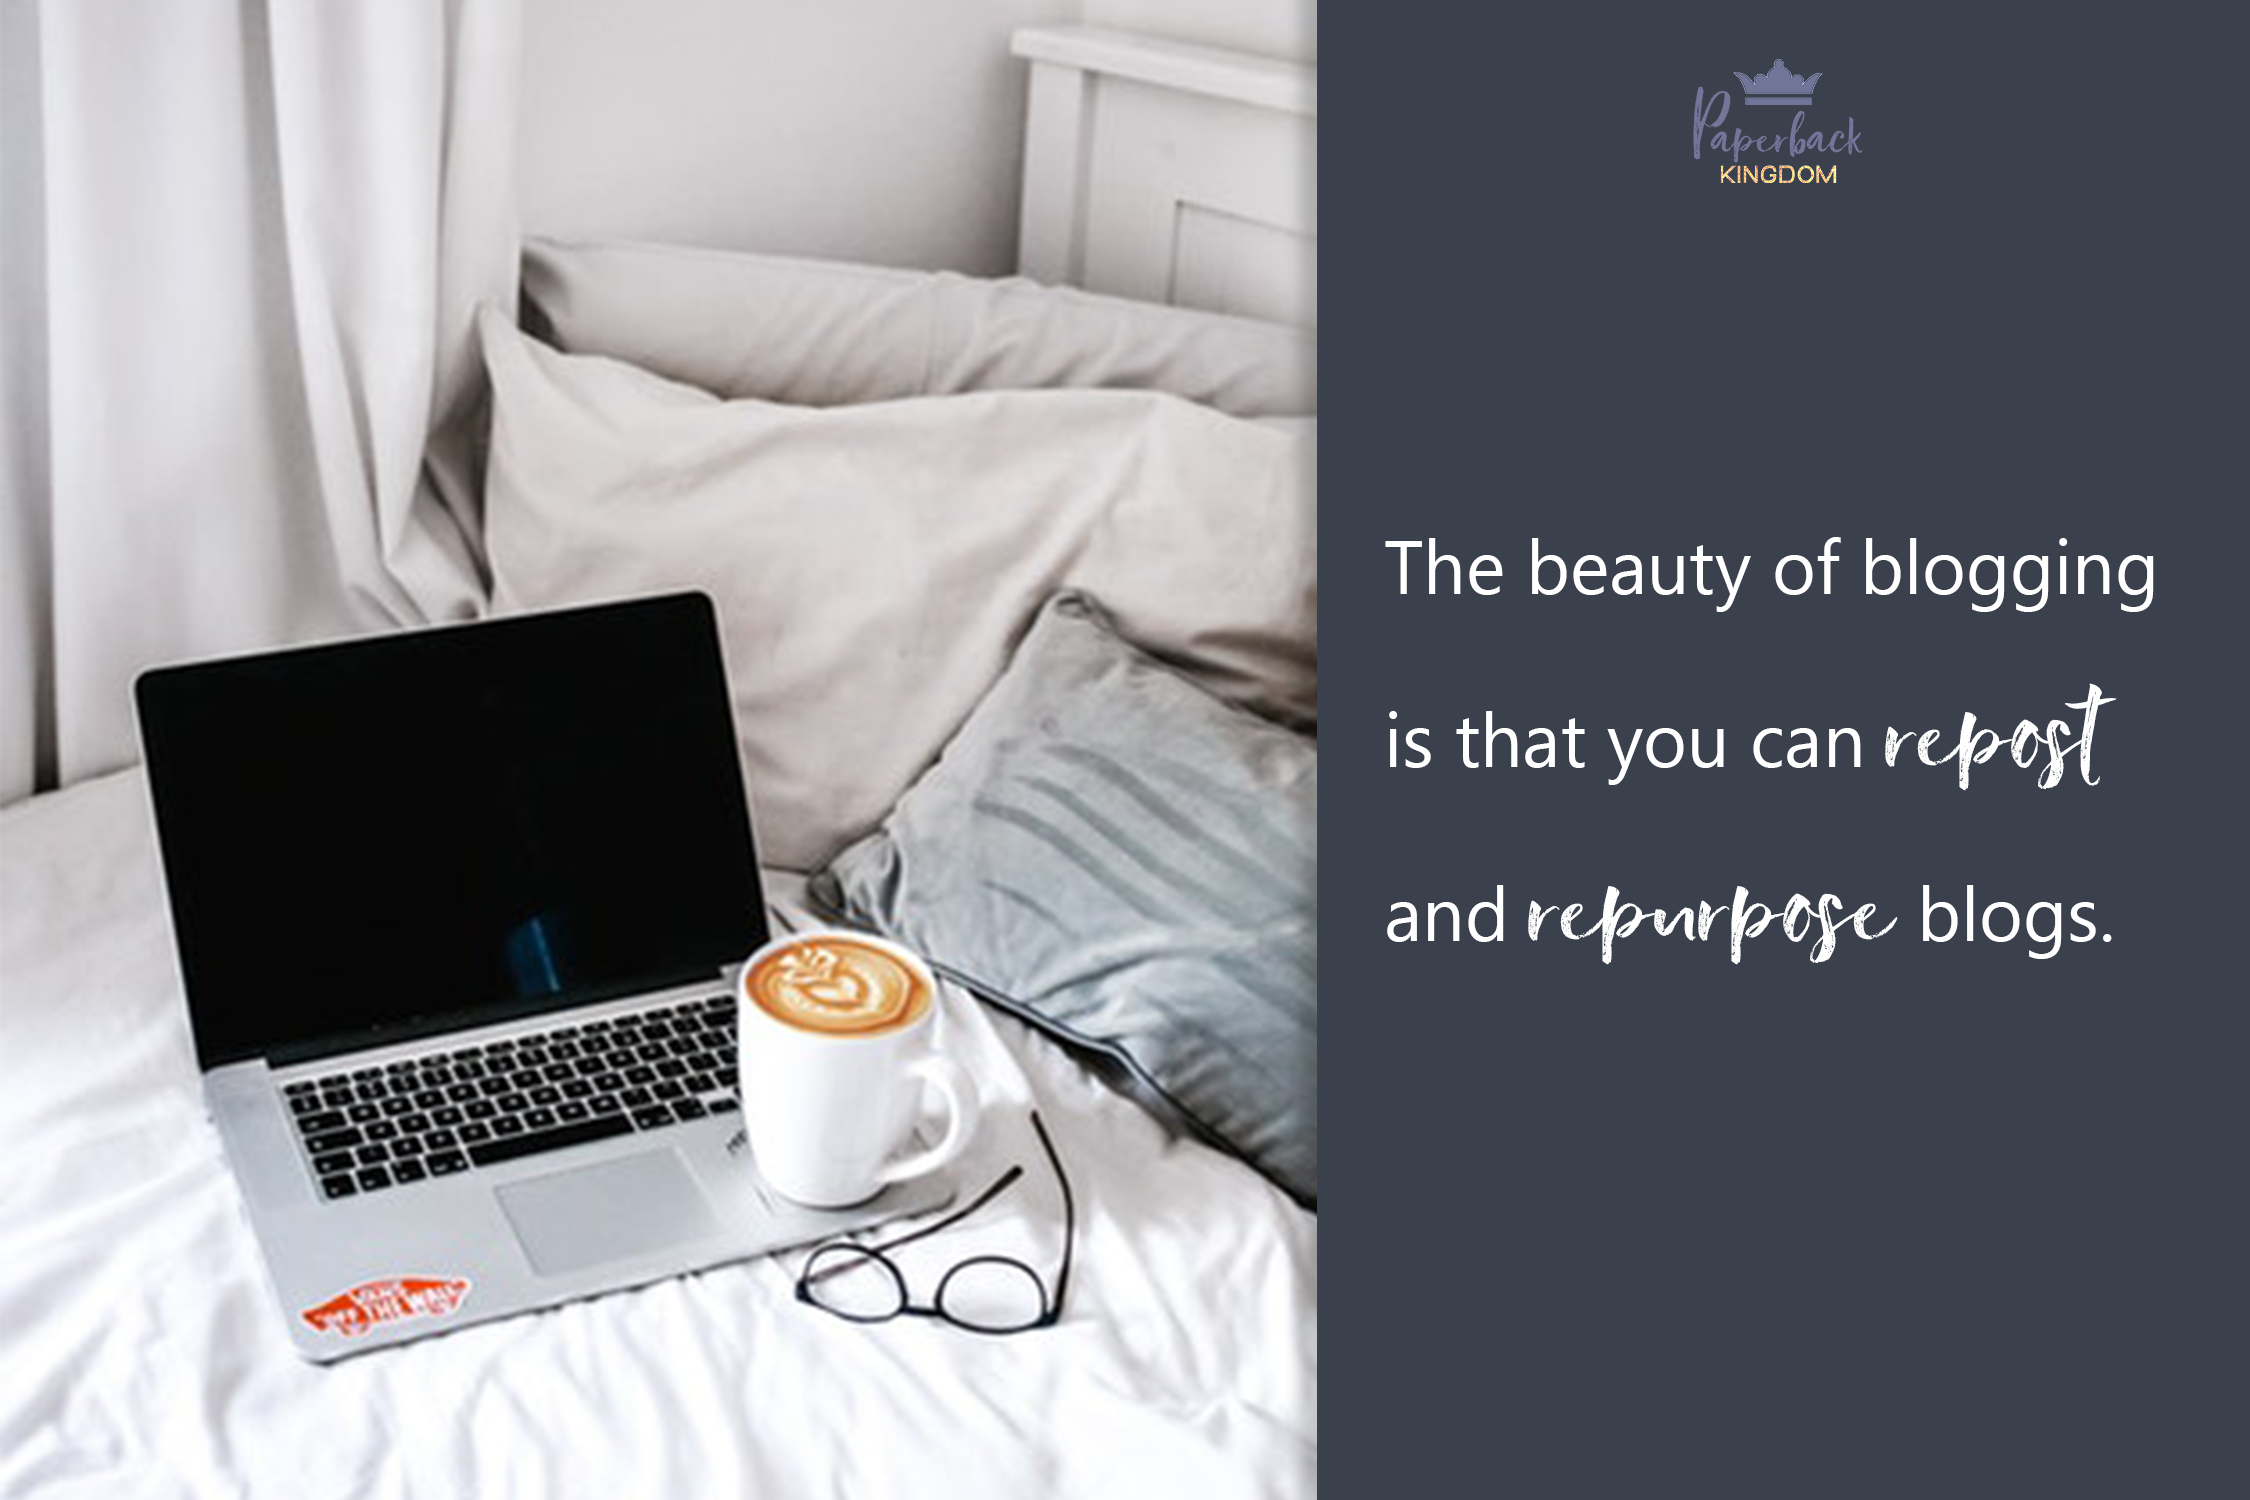 The beauty of blogging is that you can reshare and repurpose blogs.